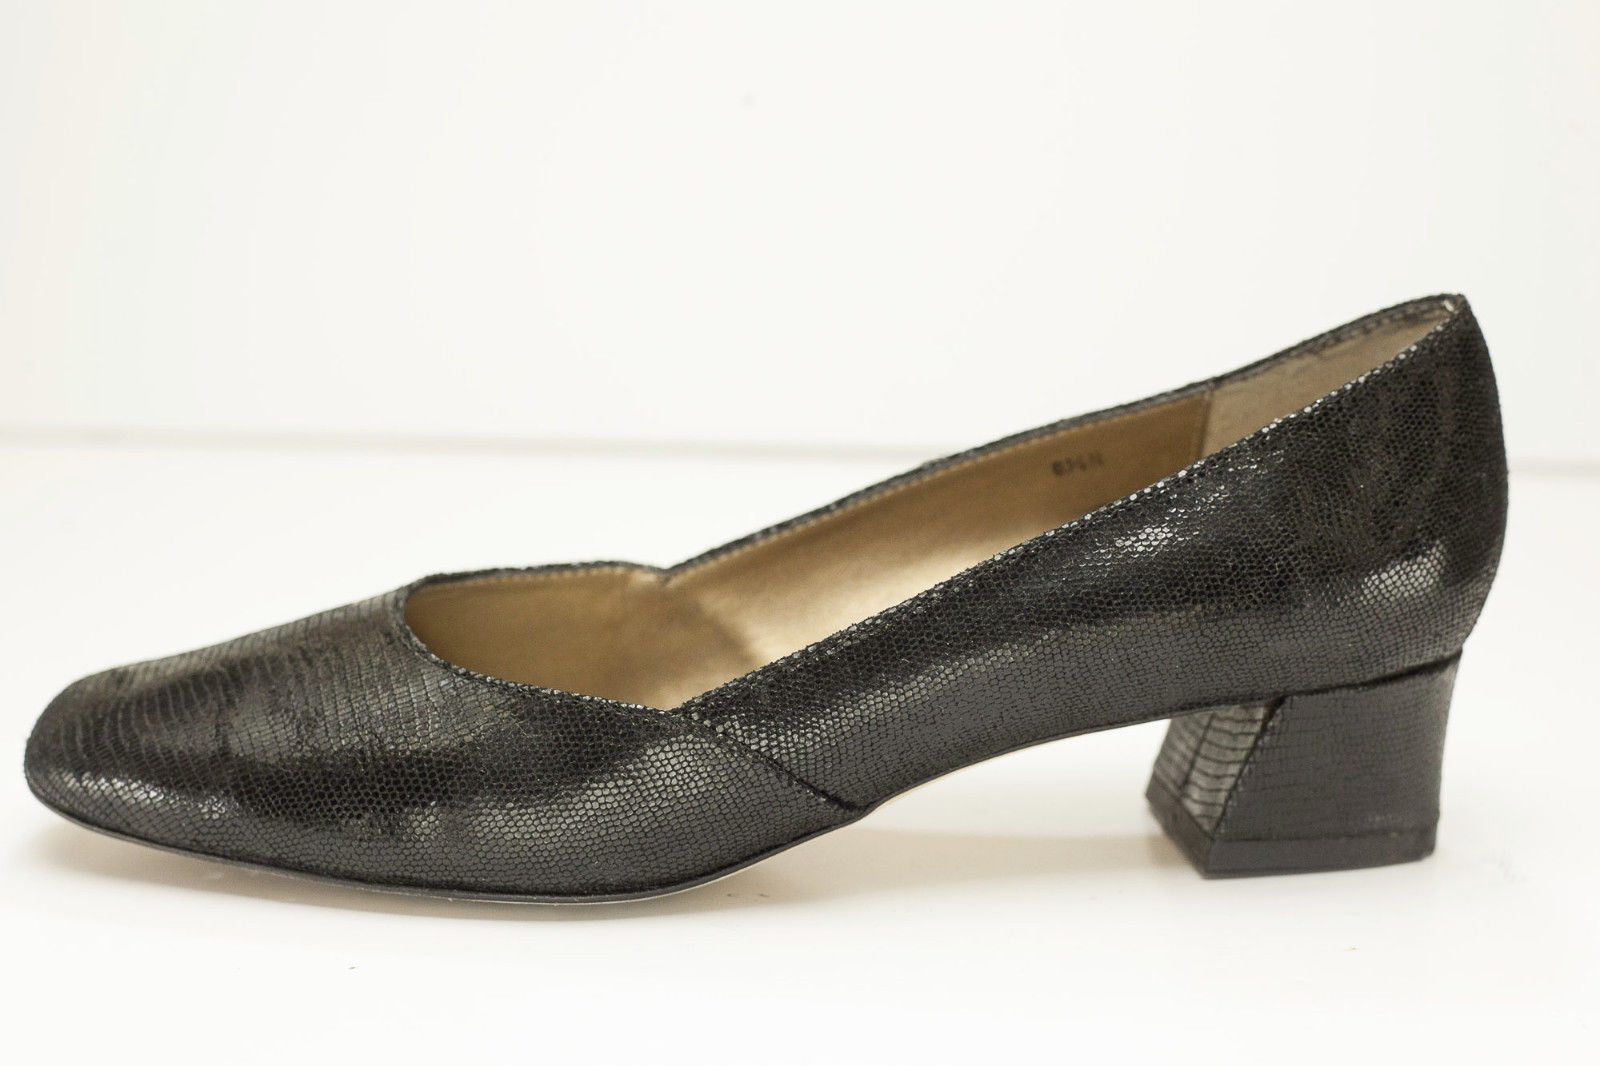 Van Eli 8.5 Narrow Black Snake Pumps Women's Shoes